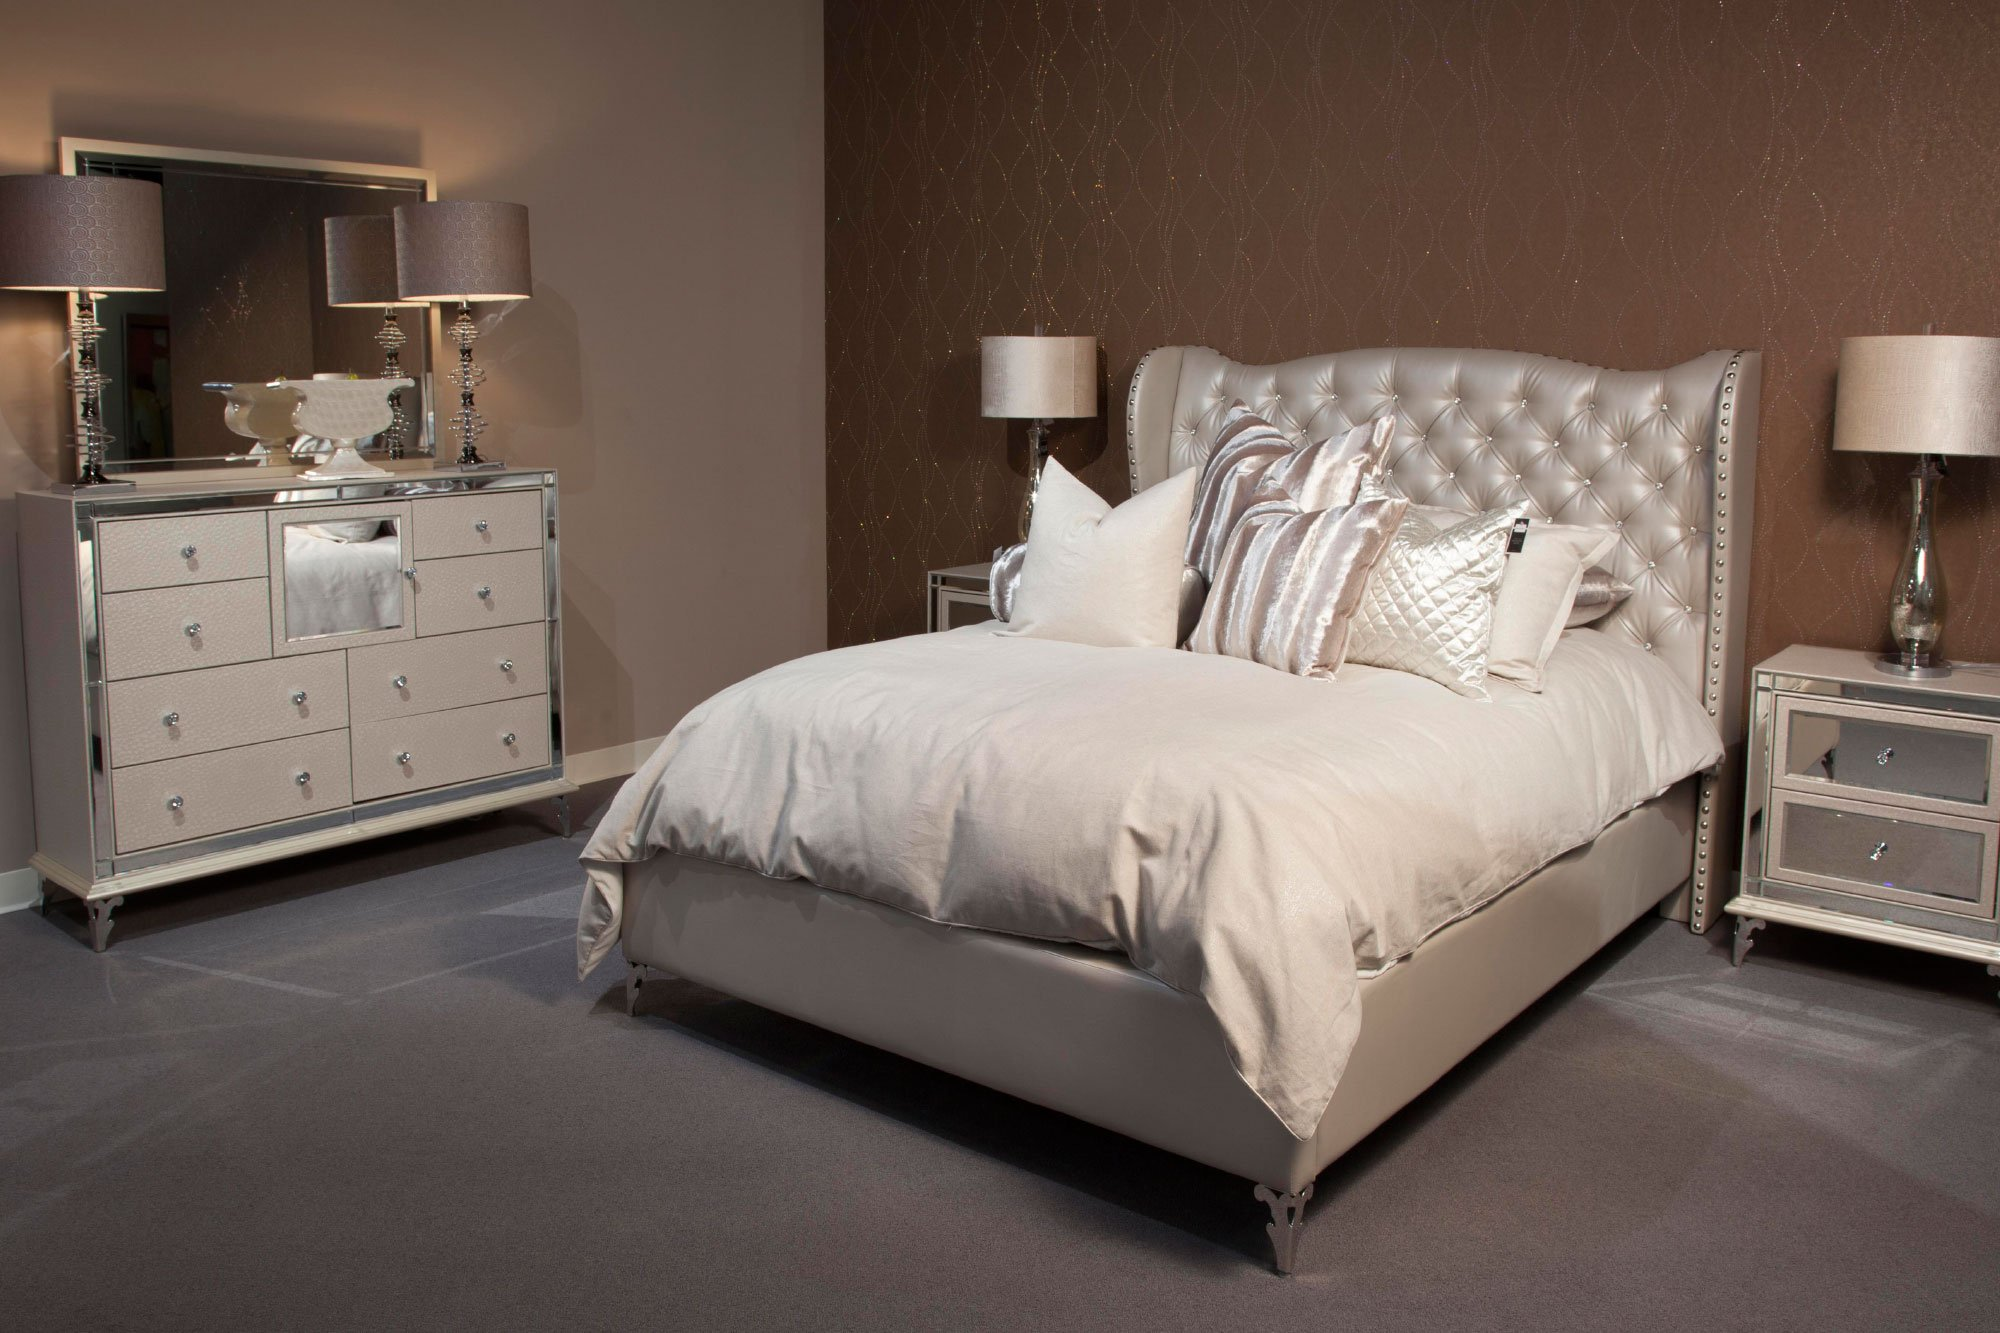 de bedroom blanc en aico lago chateau set collection